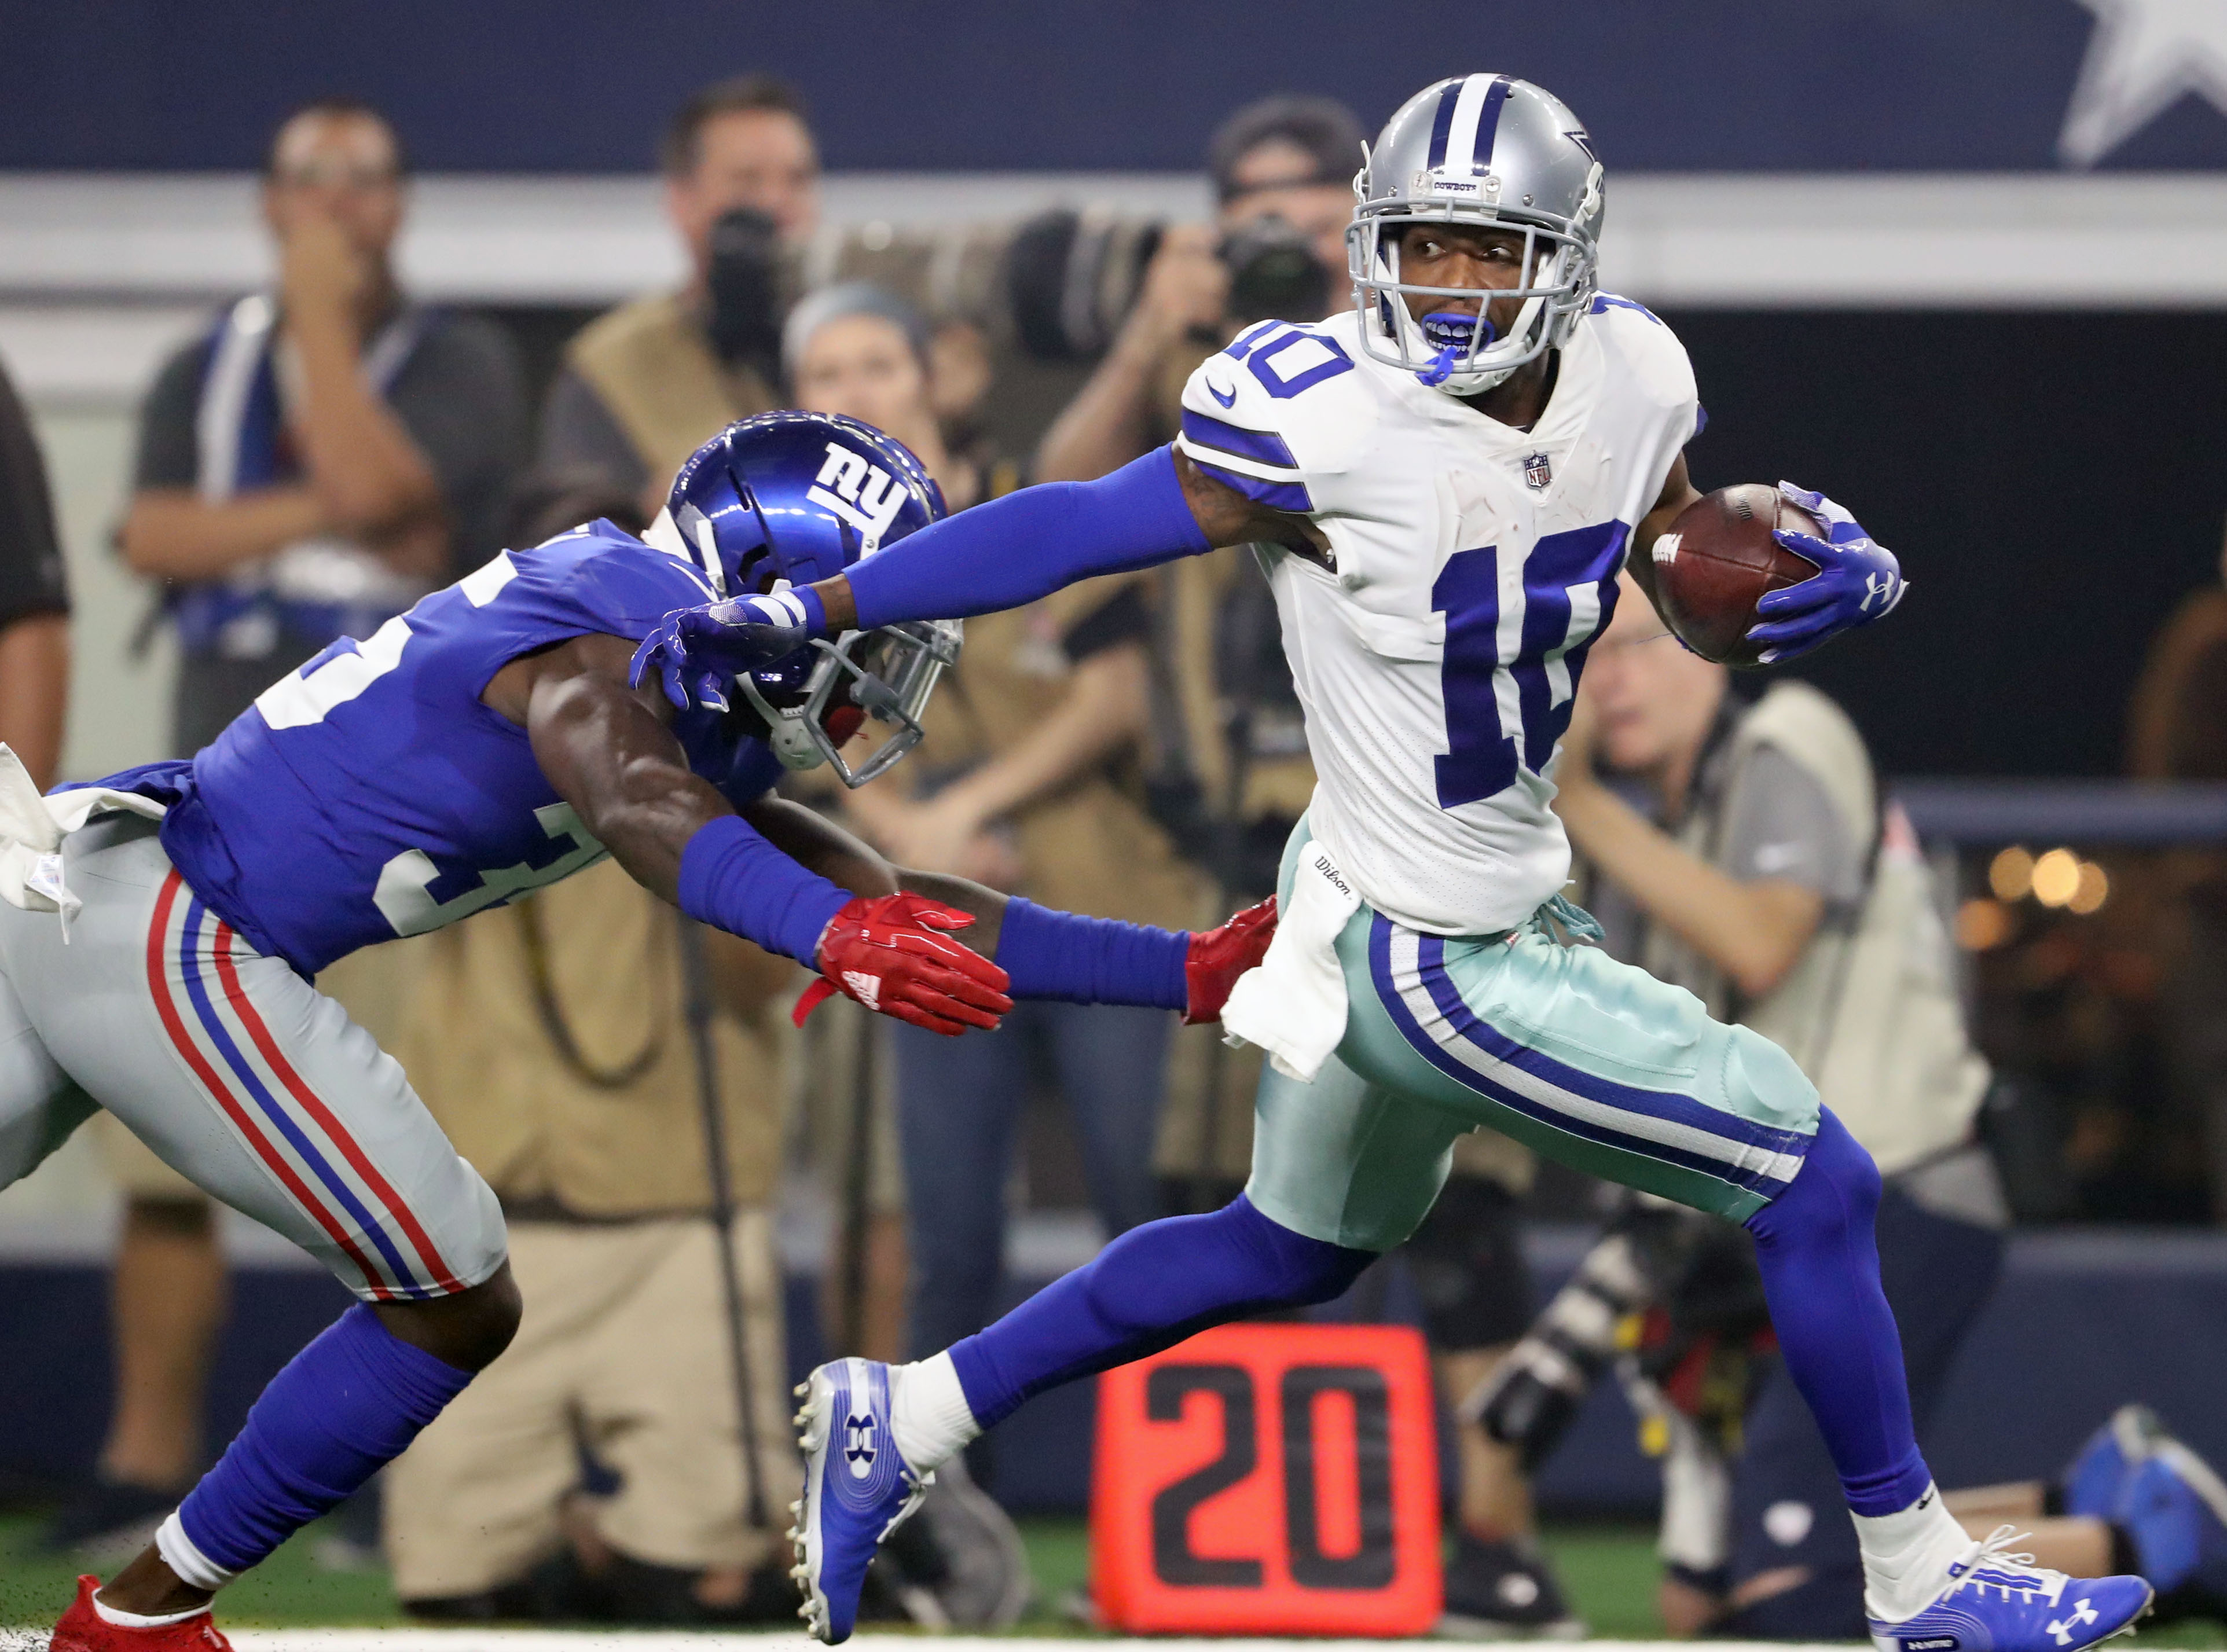 Cowboys should look for more consistency, not big plays from Tavon Austin